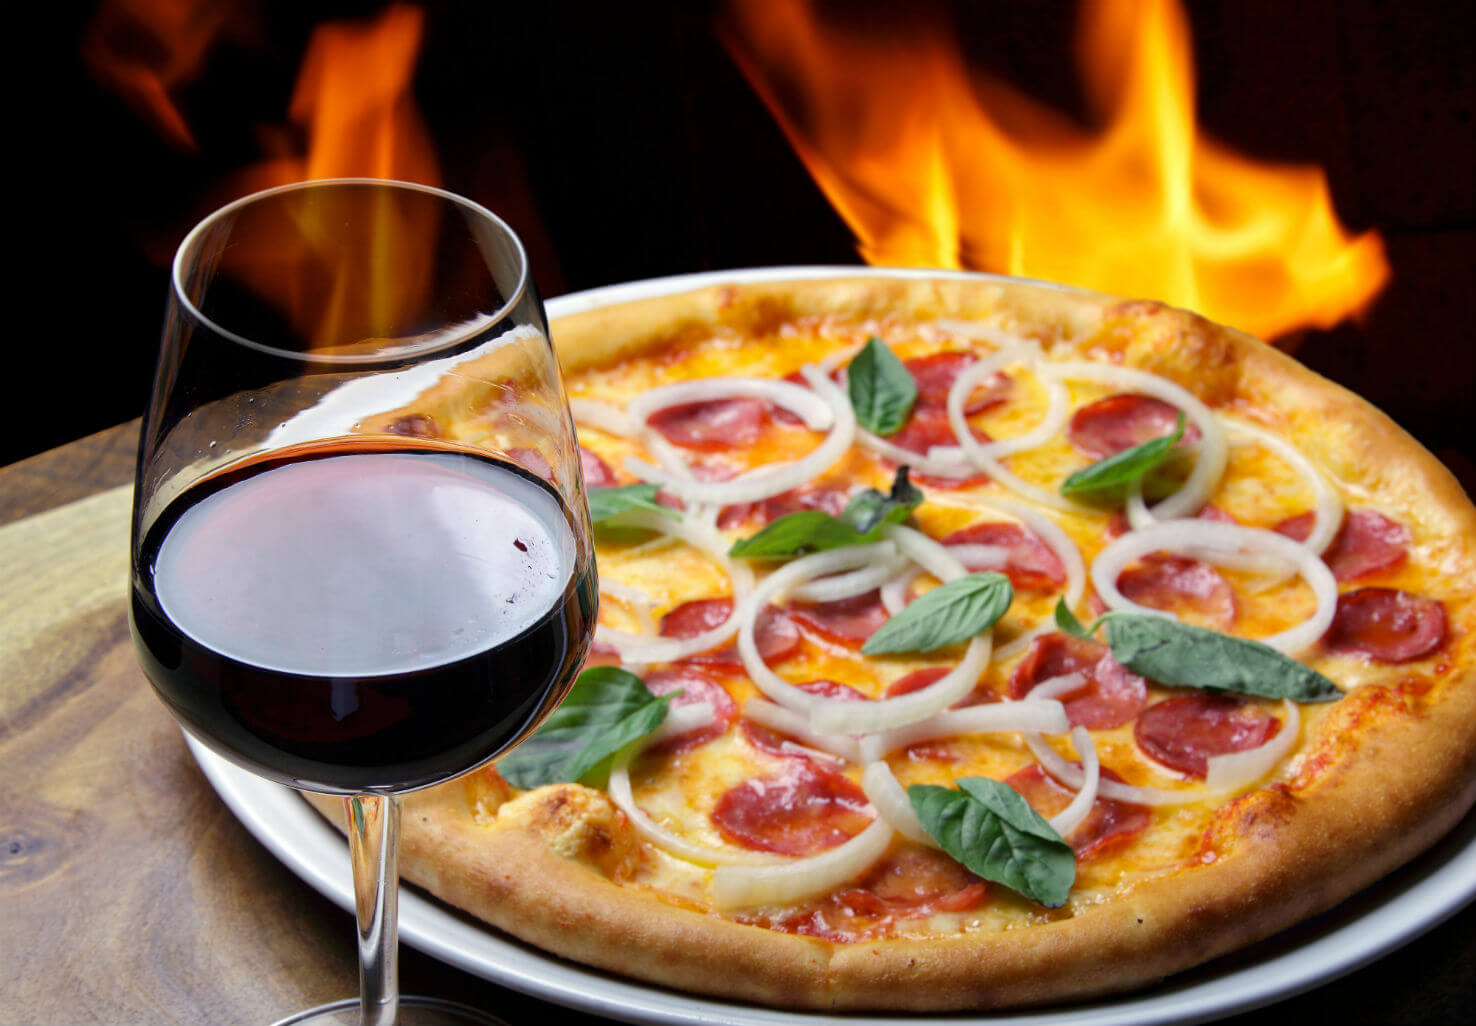 Fancy pizza near fire oven with wine glass